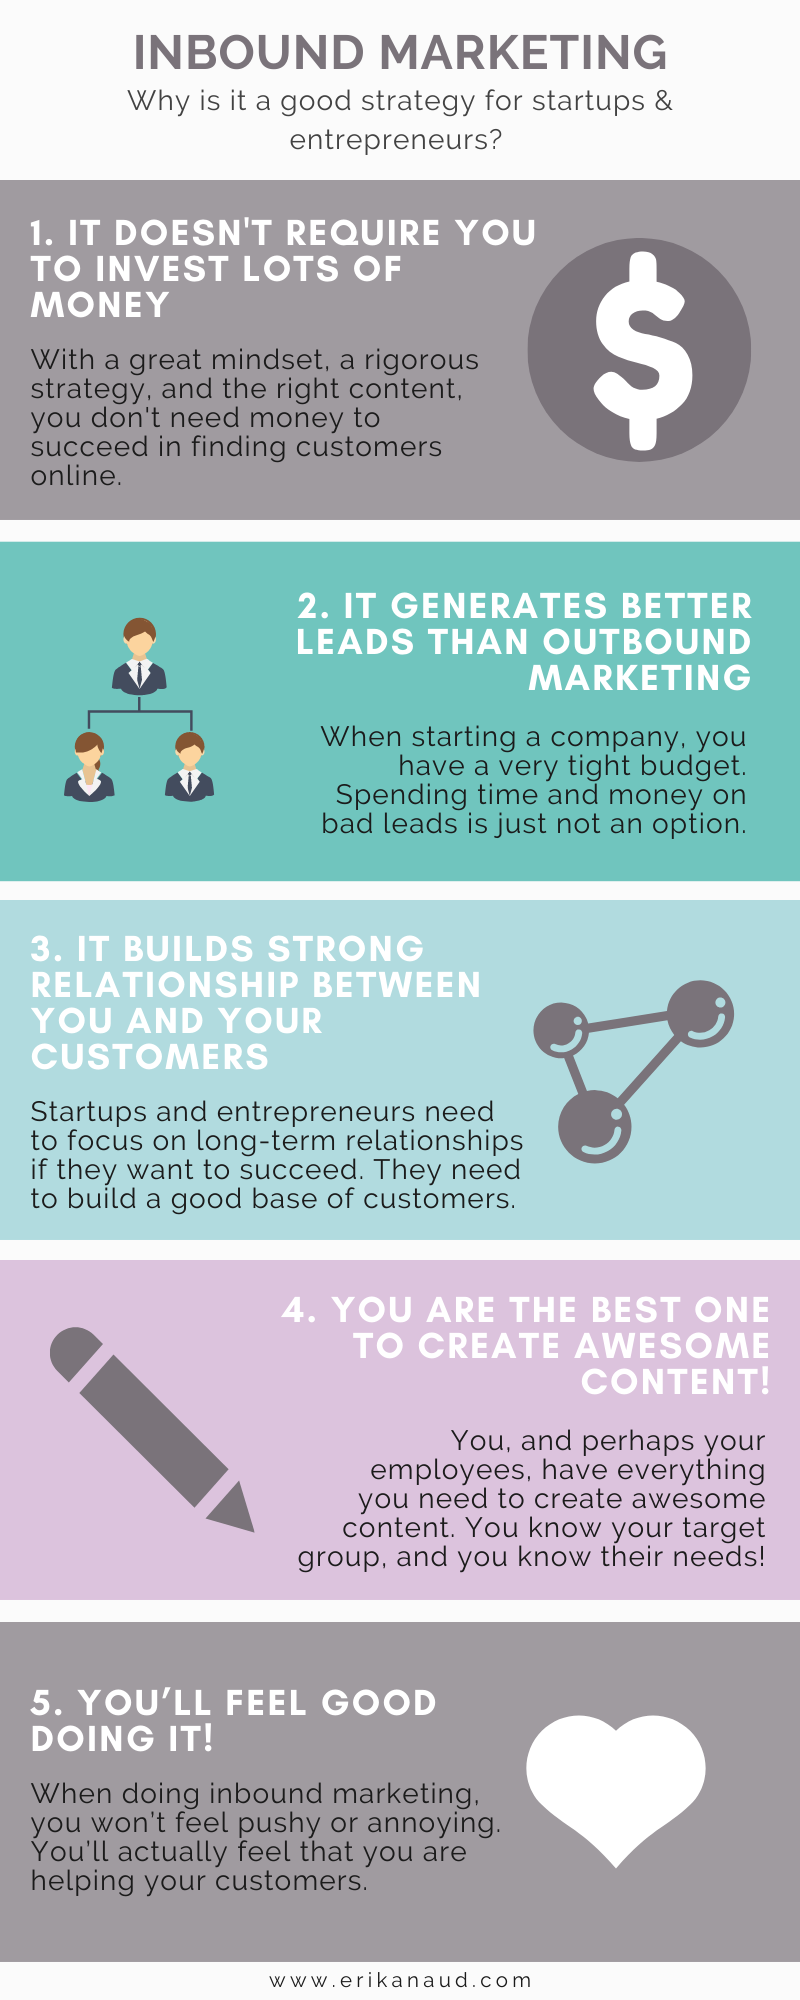 Inbound Marketing: Good for startups & entrepreneurs?: Infographic